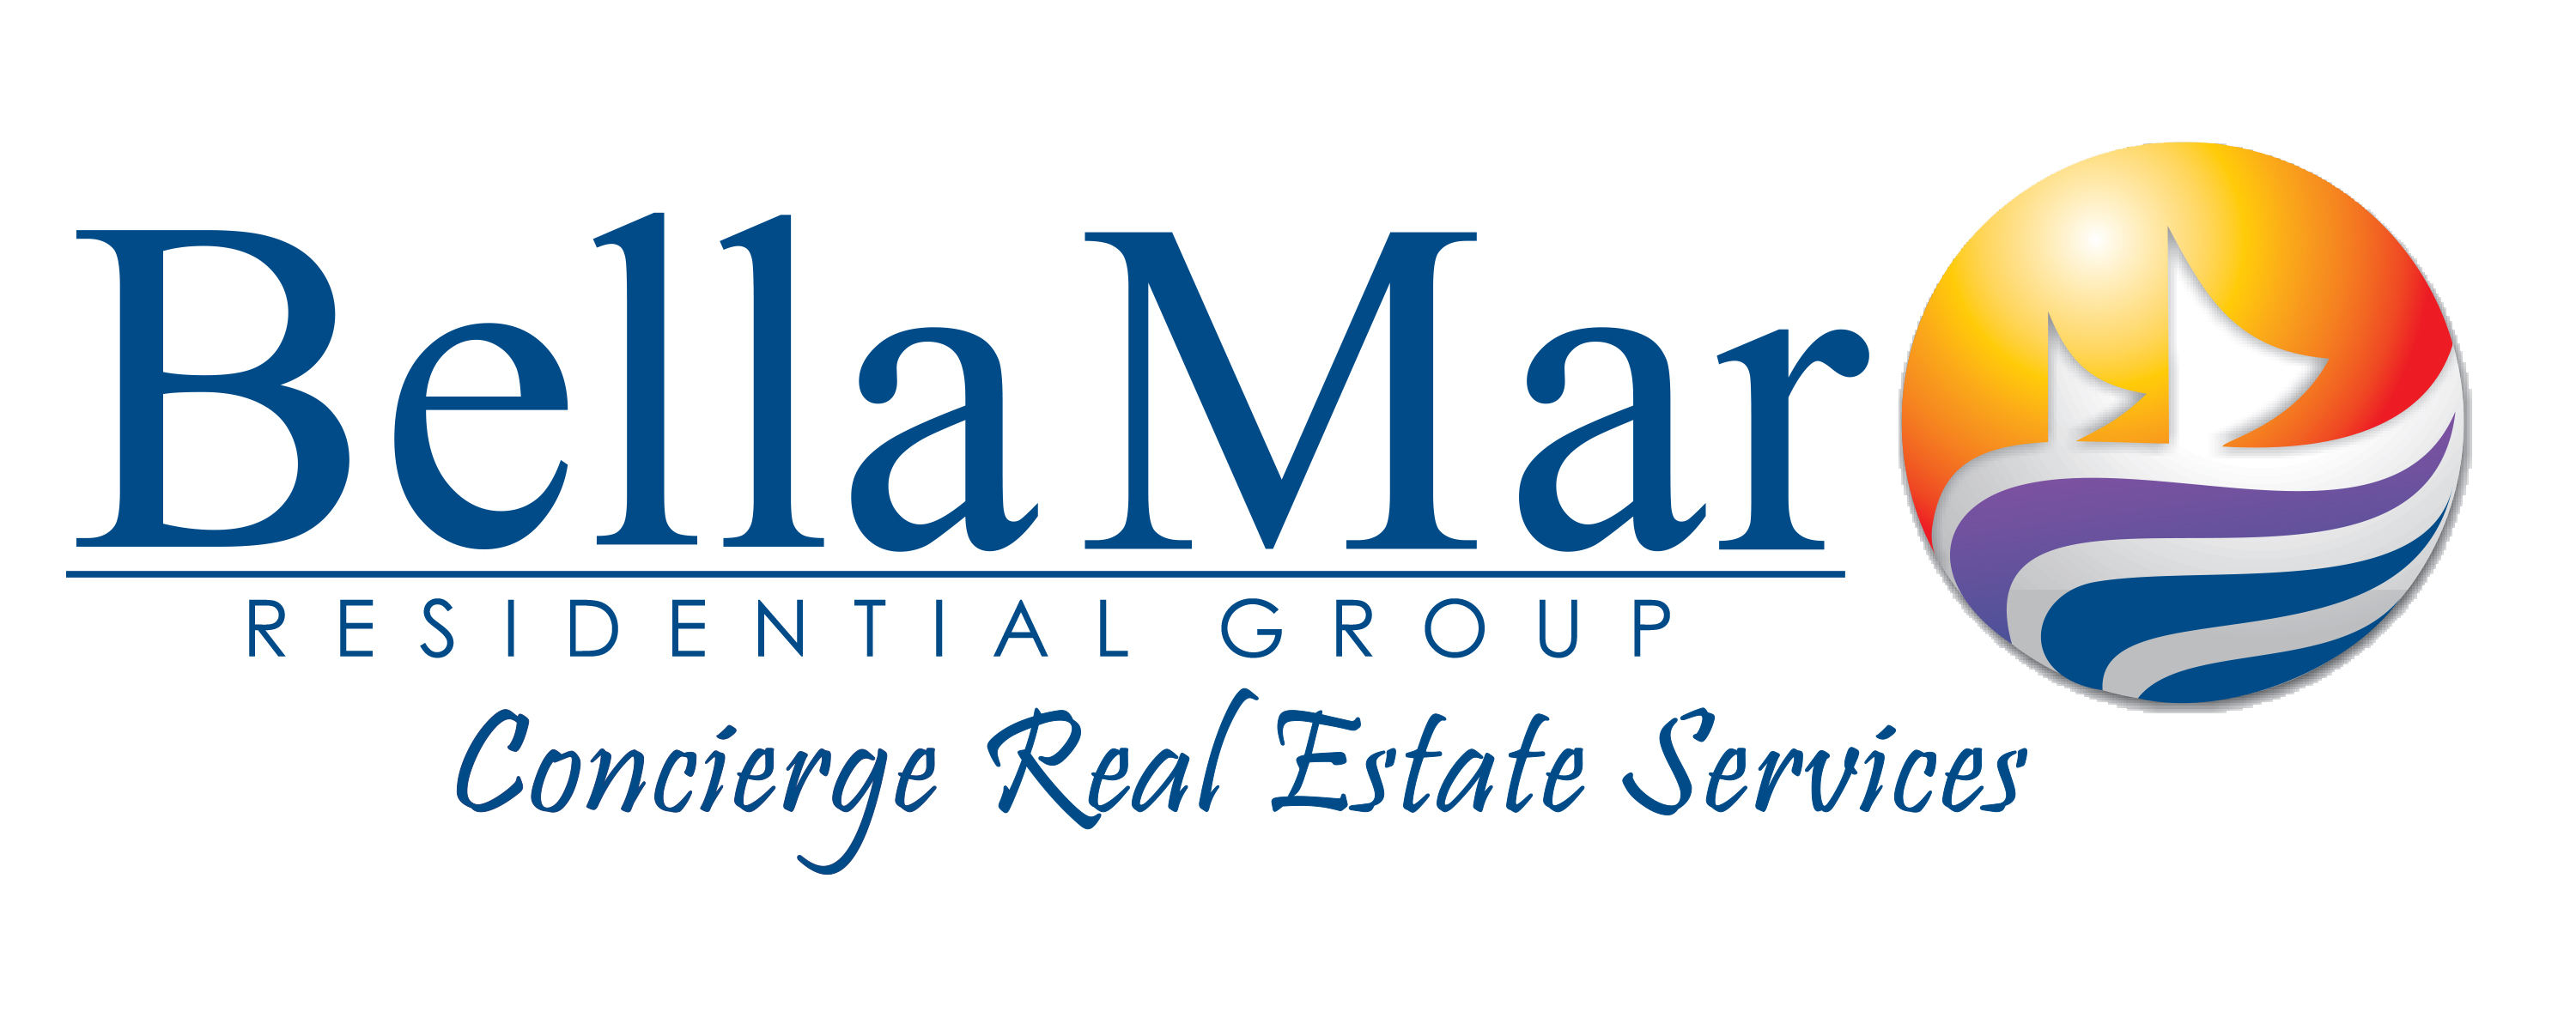 Bella Mar Residential Group